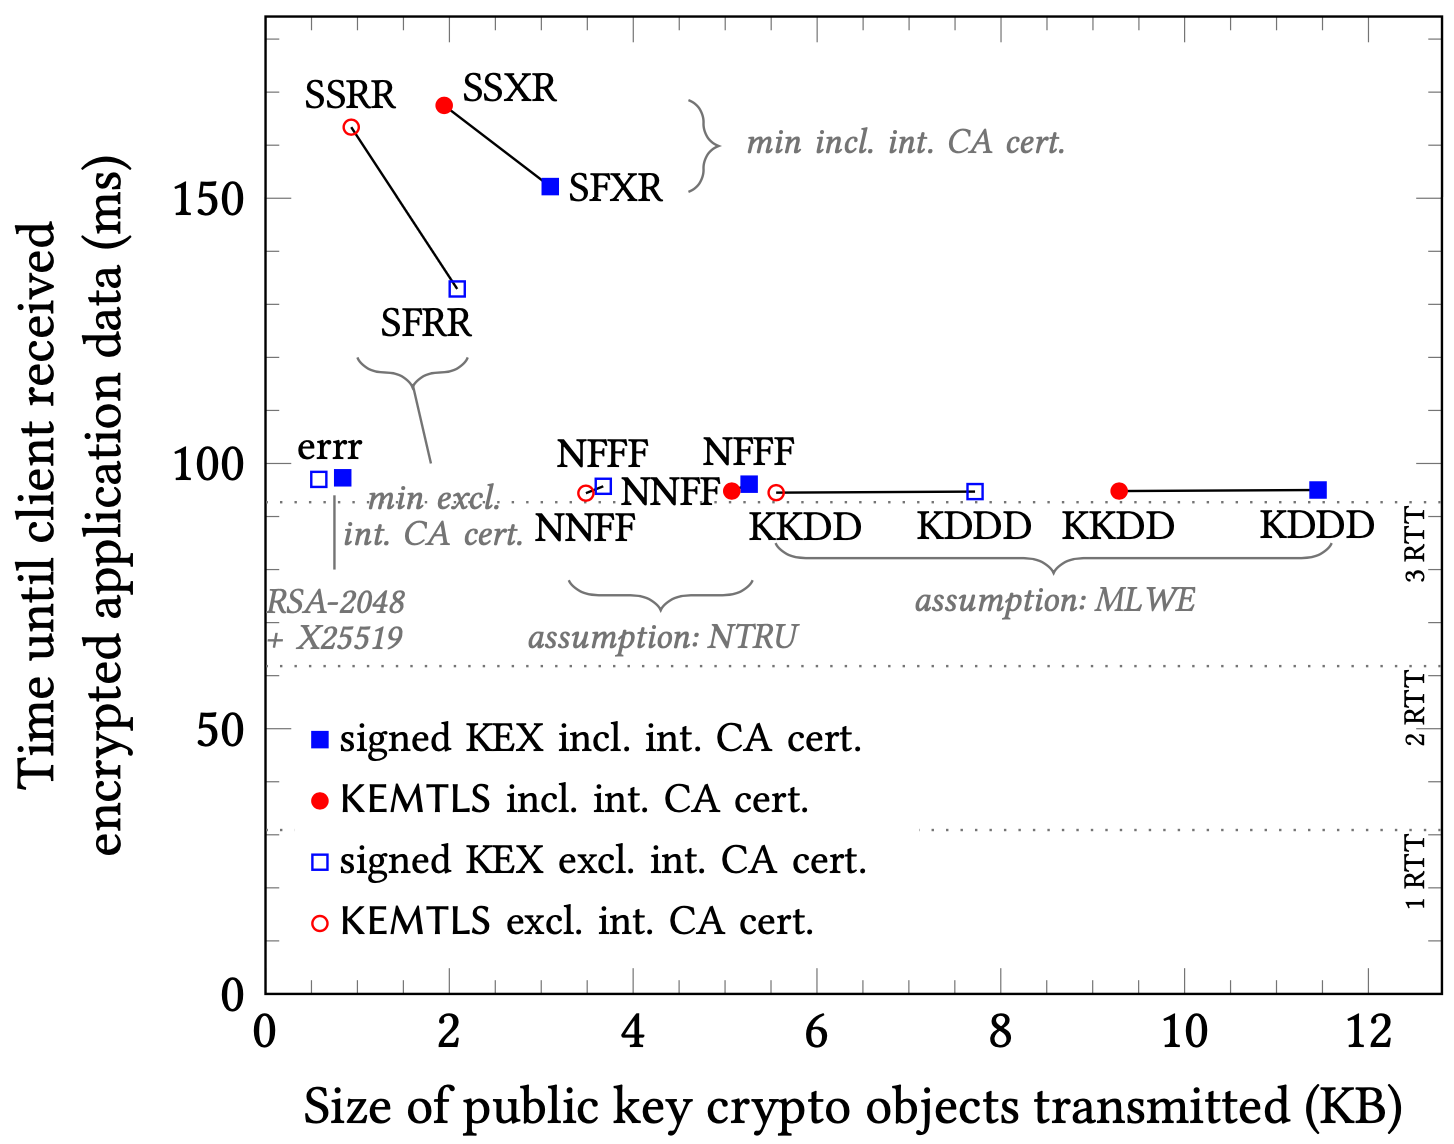 Handshake size versus handshake establishment time, for signed KEX and KEMTLS ciphersuites, including and excluding transmission/processing of one intermediate certificate. Latency 31.1 ms, bandwidth 1000 Mbps, 0% packet loss. Label syntax: ABCD: A = ephemeral key exchange, B = leaf certificate, C = intermediate certificate, D = root certificate. Label values: <u>D</u>ilithium, <u>E</u>CDH X25519, <u>F</u>alcon, <u>G</u>eMSS, <u>K</u>yber, <u>N</u>TRU, <u>R</u>SA-2048, <u>S</u>IKE, <u>X</u>MSS<sup>MT</sup><sub>s</sub>; all level-1 schemes.